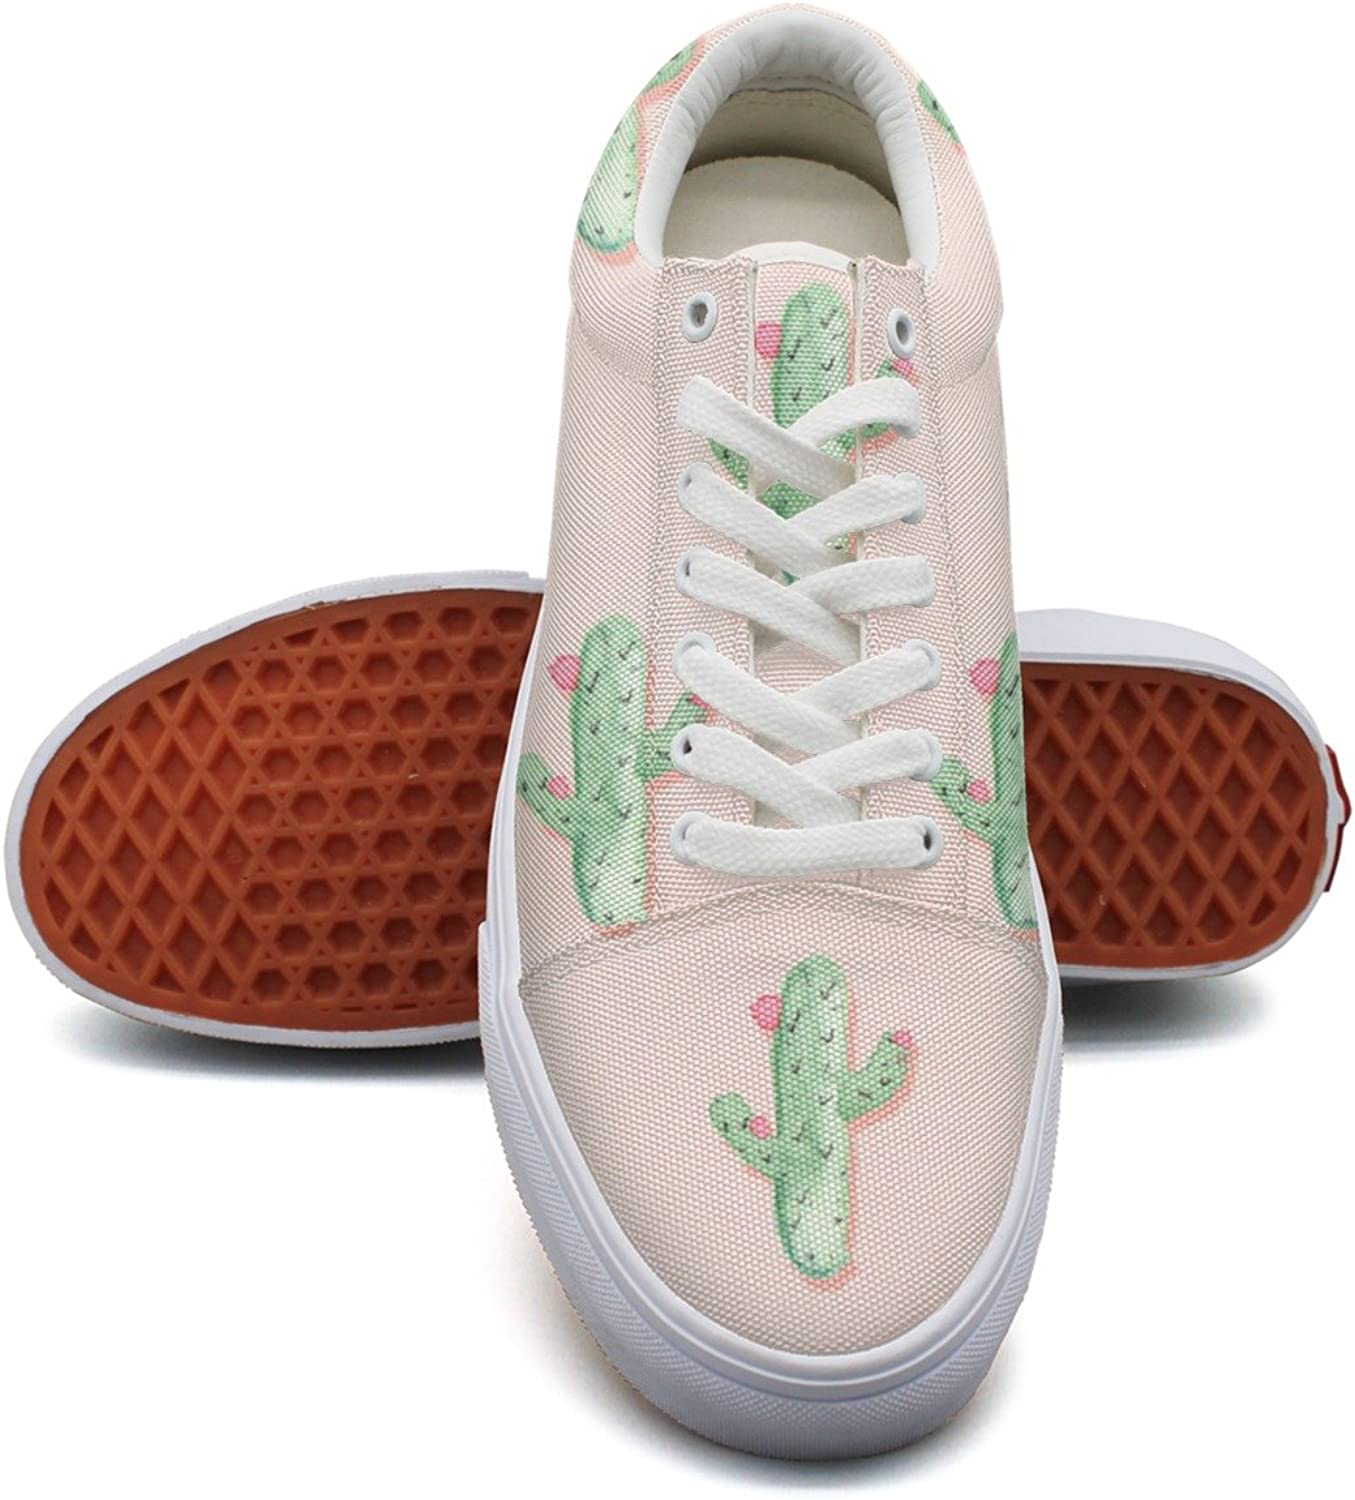 Cute Cactus And Flowers Fashion Canvas Sneaker shoes For Womns 3D Printed Low Top shoes